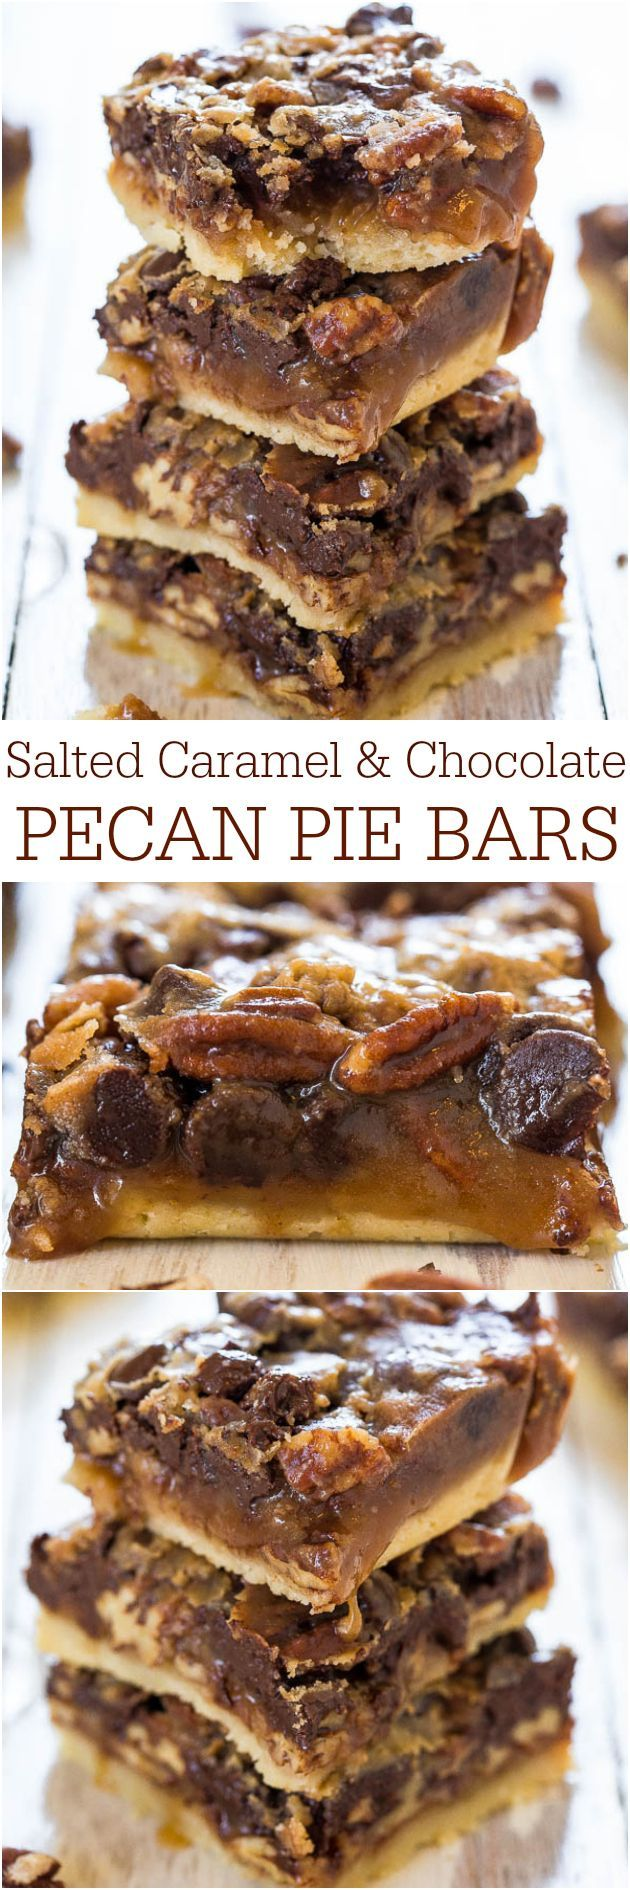 Salted Caramel and Chocolate Pecan Pie Bars | Bobs, Pecan pie bars and ...